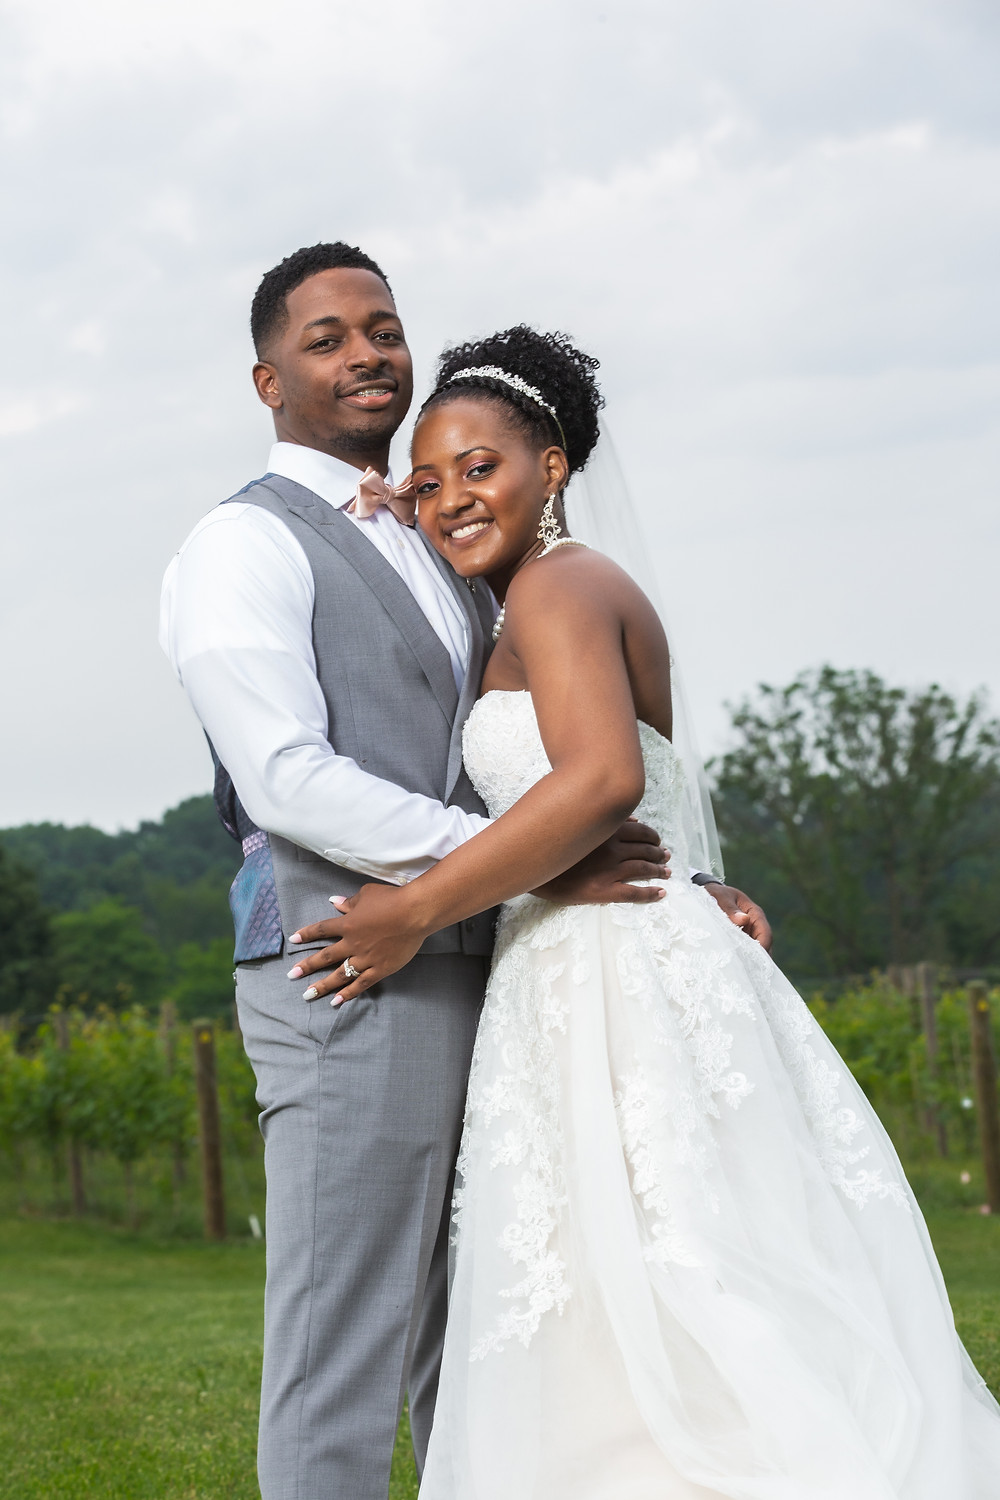 Demitra and Lance pose for a wedding portrait after their wedding ceremony at Crosskeys Vineyards in Mt. Crawford, Virginia.